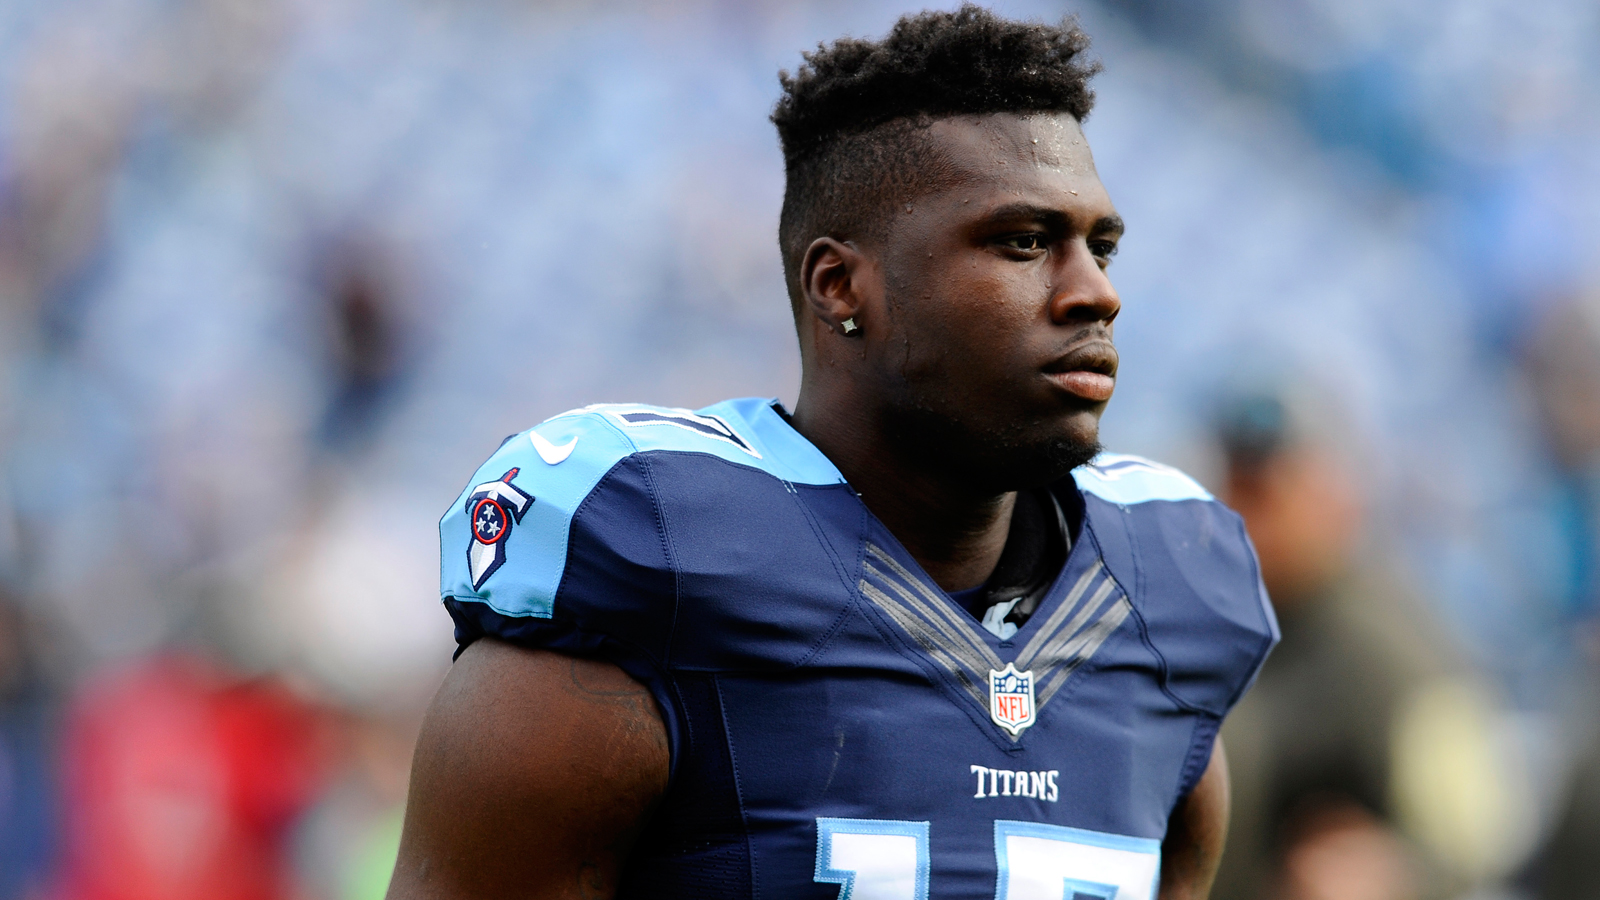 Titans seek consistency from rookie receiver Green-Beckham